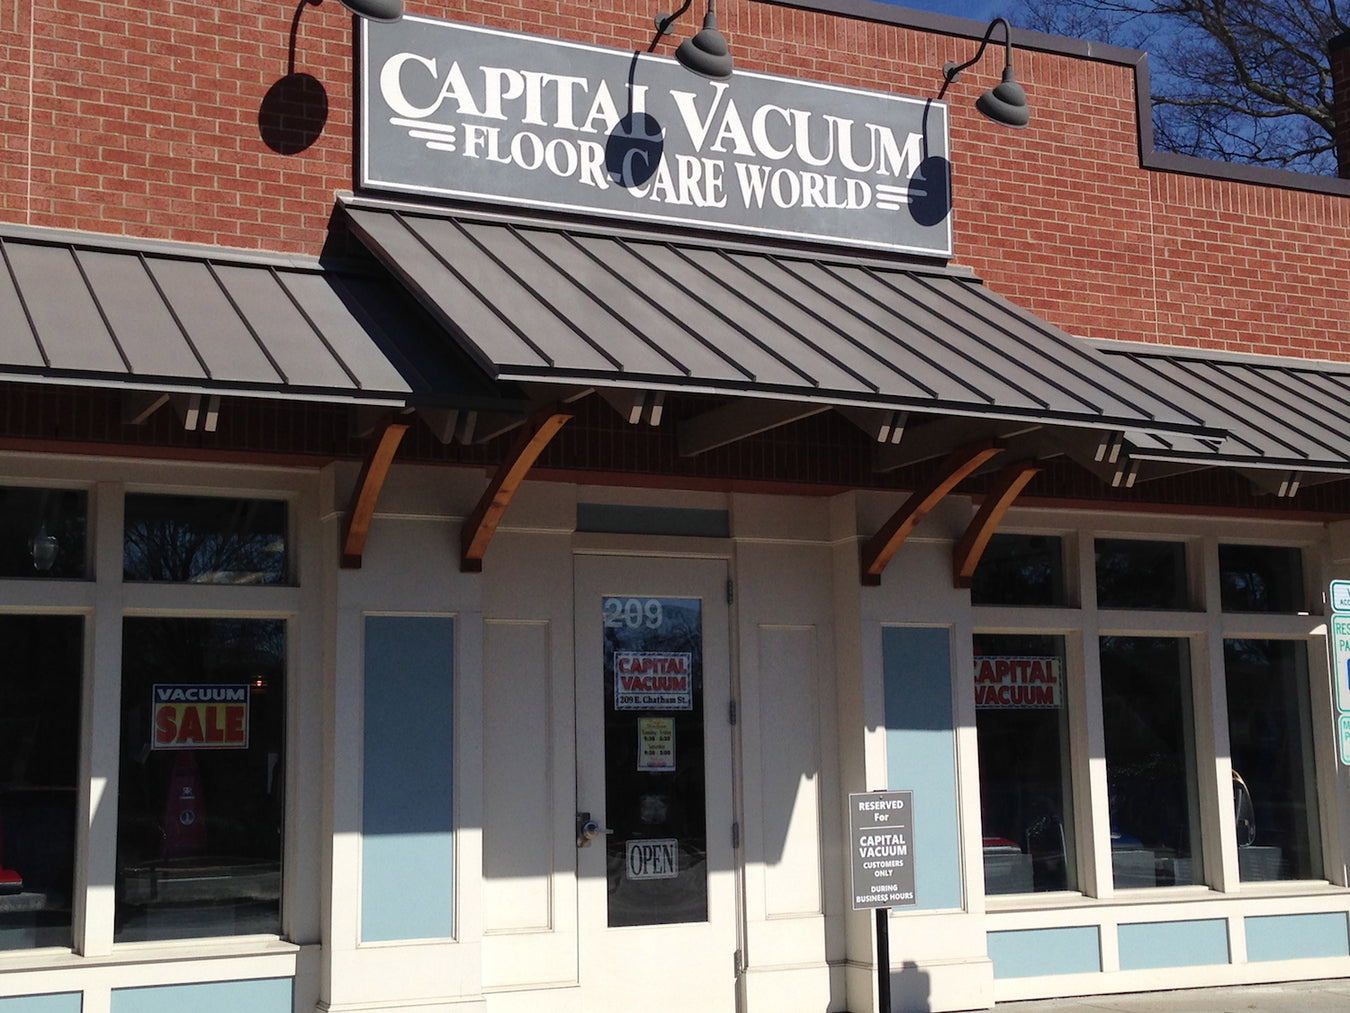 Capital Vacuum Floor-Care World 1666 N Market Dr Raleigh NC 27609 (919) 878-8530 209 E Chatham St Cary NC 27511 www.cleanhomshop.com